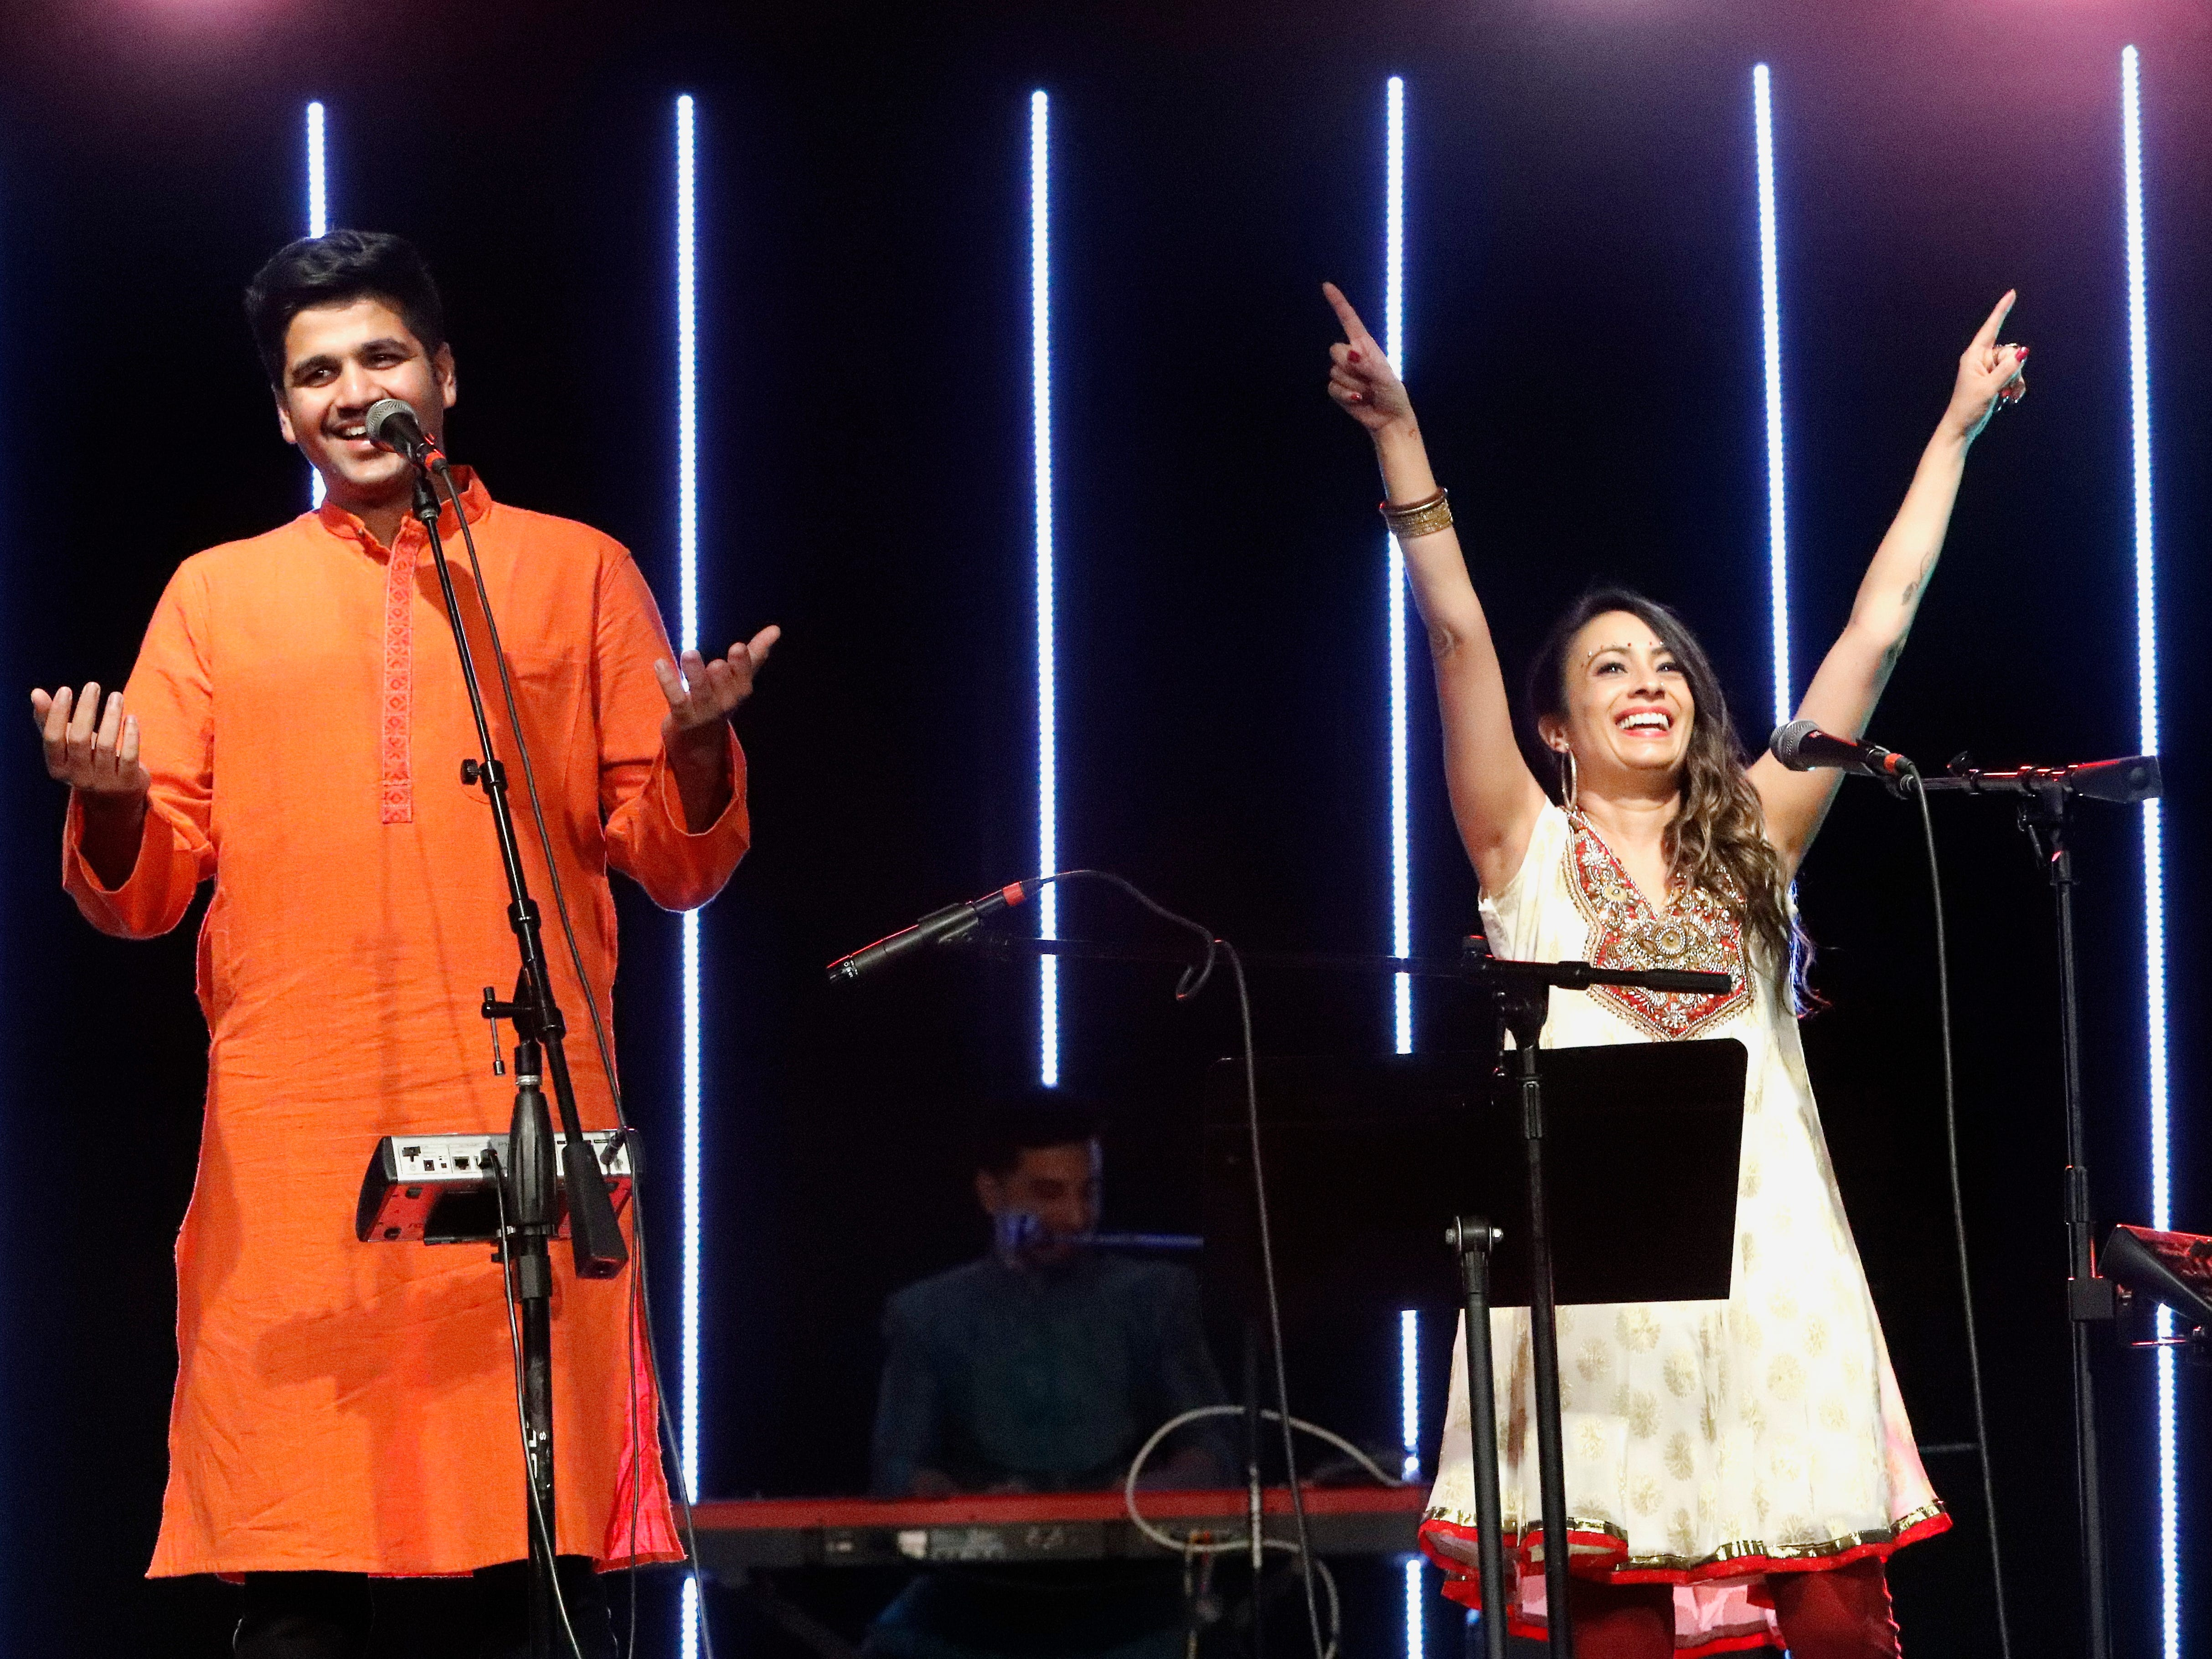 International students from Bethel Church's School of Supernatural Ministry present the Concert of the Nations on Thursday, March 14, 2019, in Redding. Pictured are Jeremiah D'Souza and Amy Kuruvilla (India).